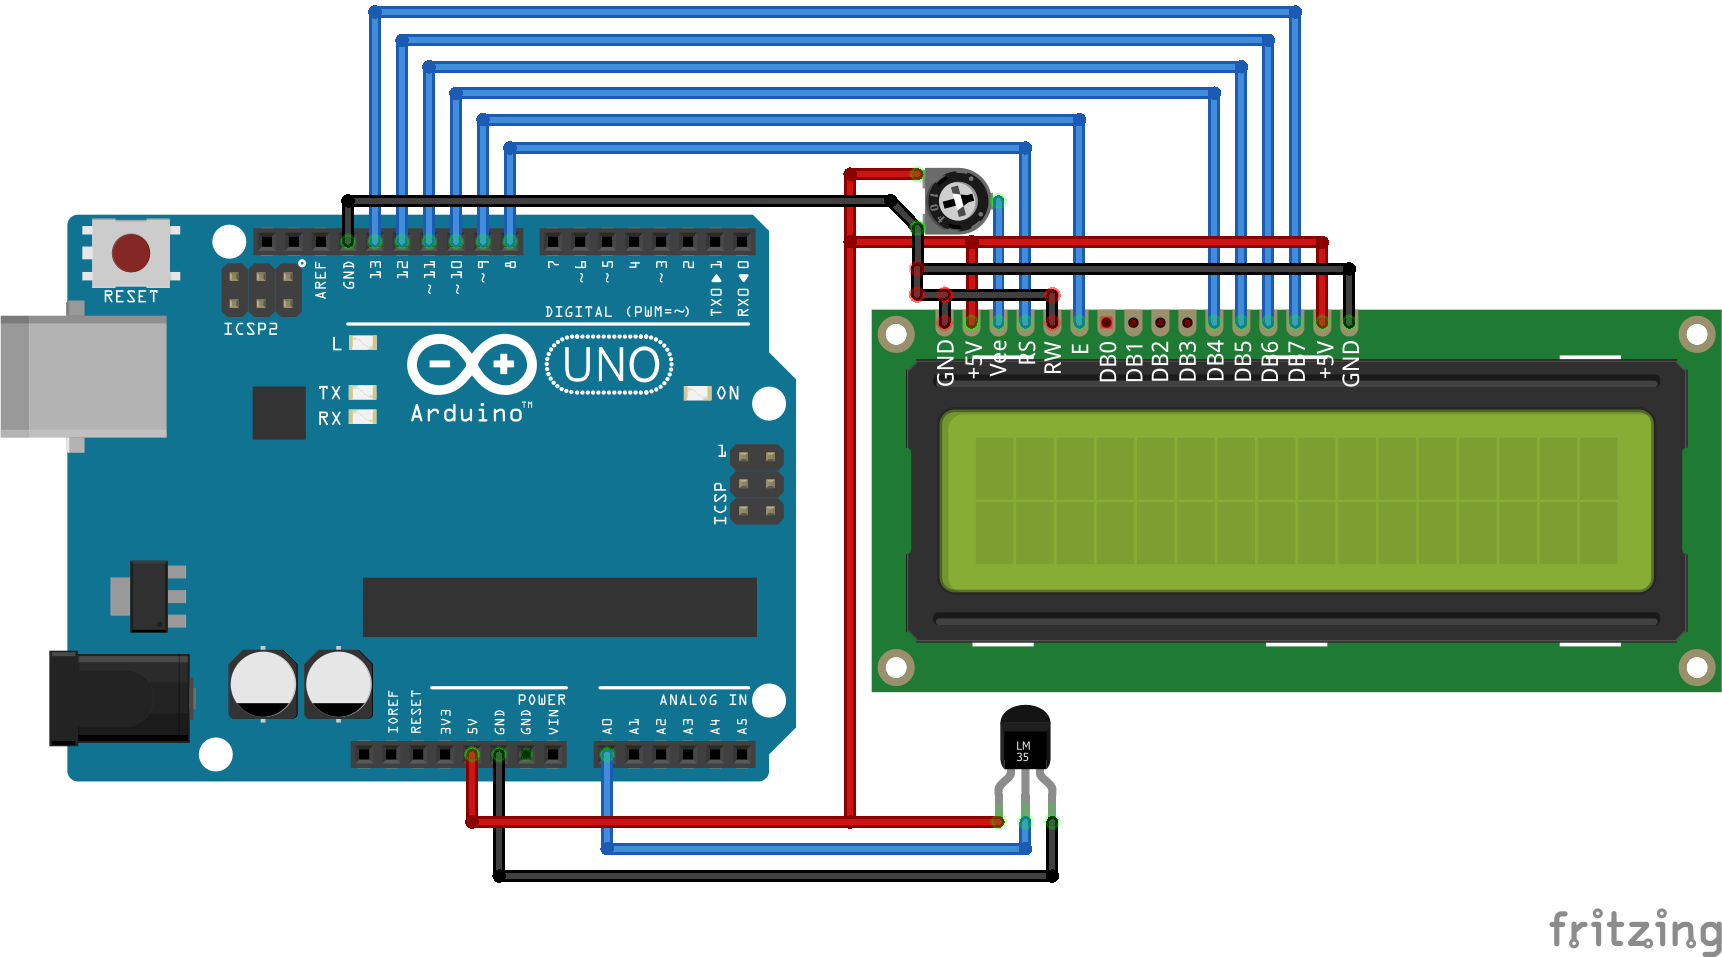 Arduino Lm35 Temperature Sensor Project Consisting Circuit And Rotary Encoder Display Schematic Program Explanation Once Understanding This We Can Interface Any Analog